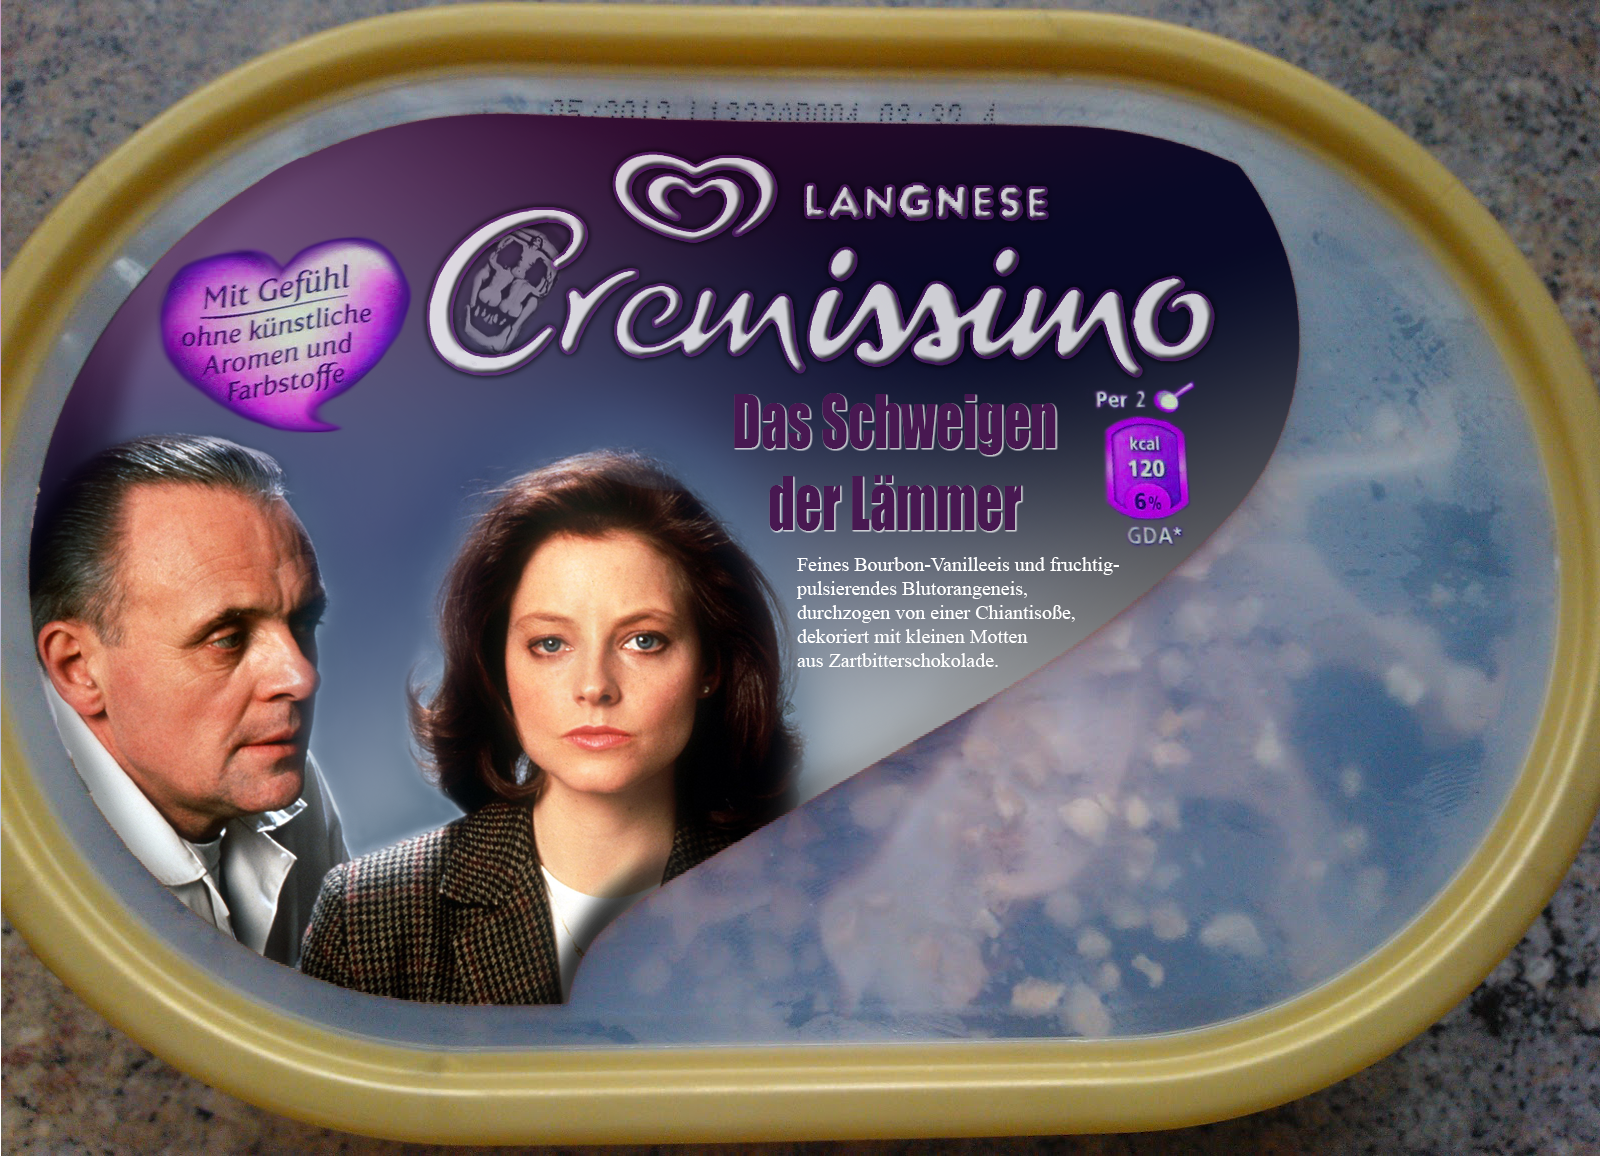 Langnese Cremissimo Silence of the Lambs by Eschenfelder